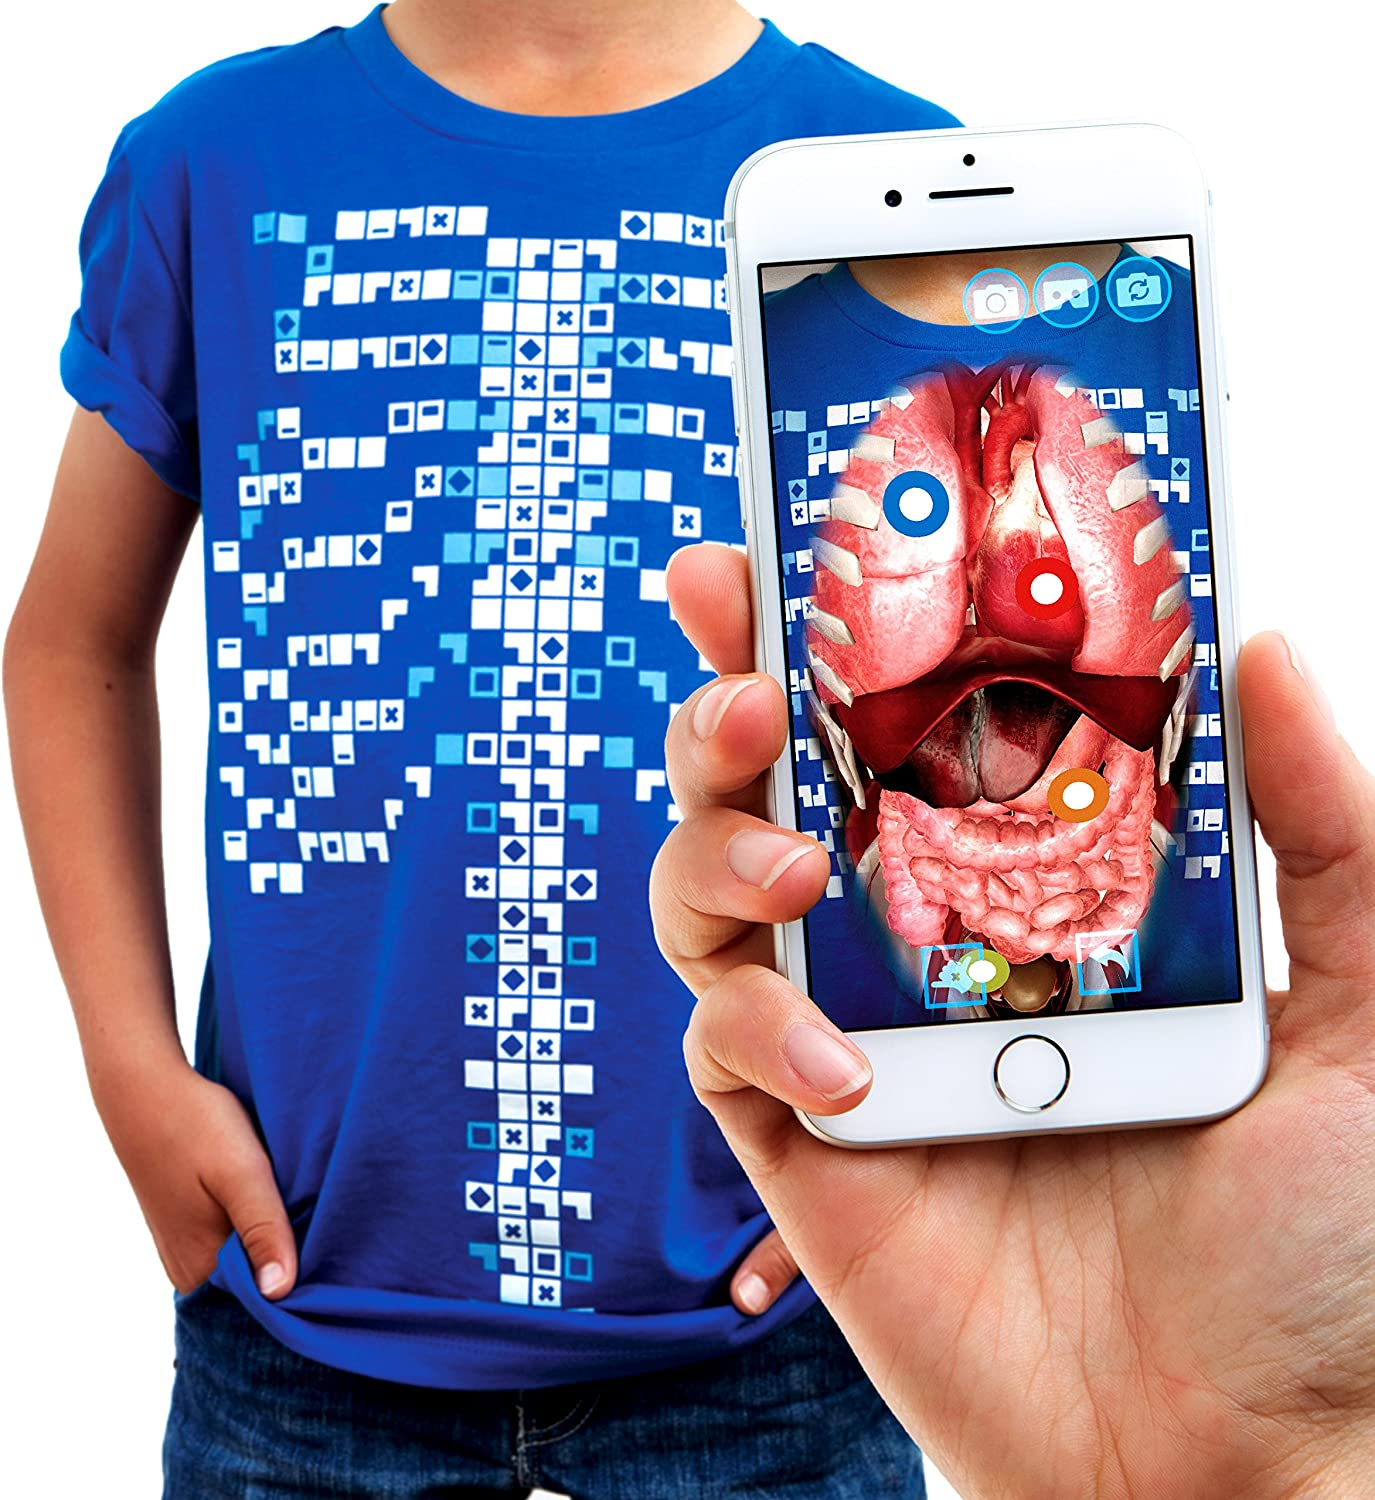 Curiscope Virtuali-Tee: Educational Augmented Reality T-Shirt for Anatomy